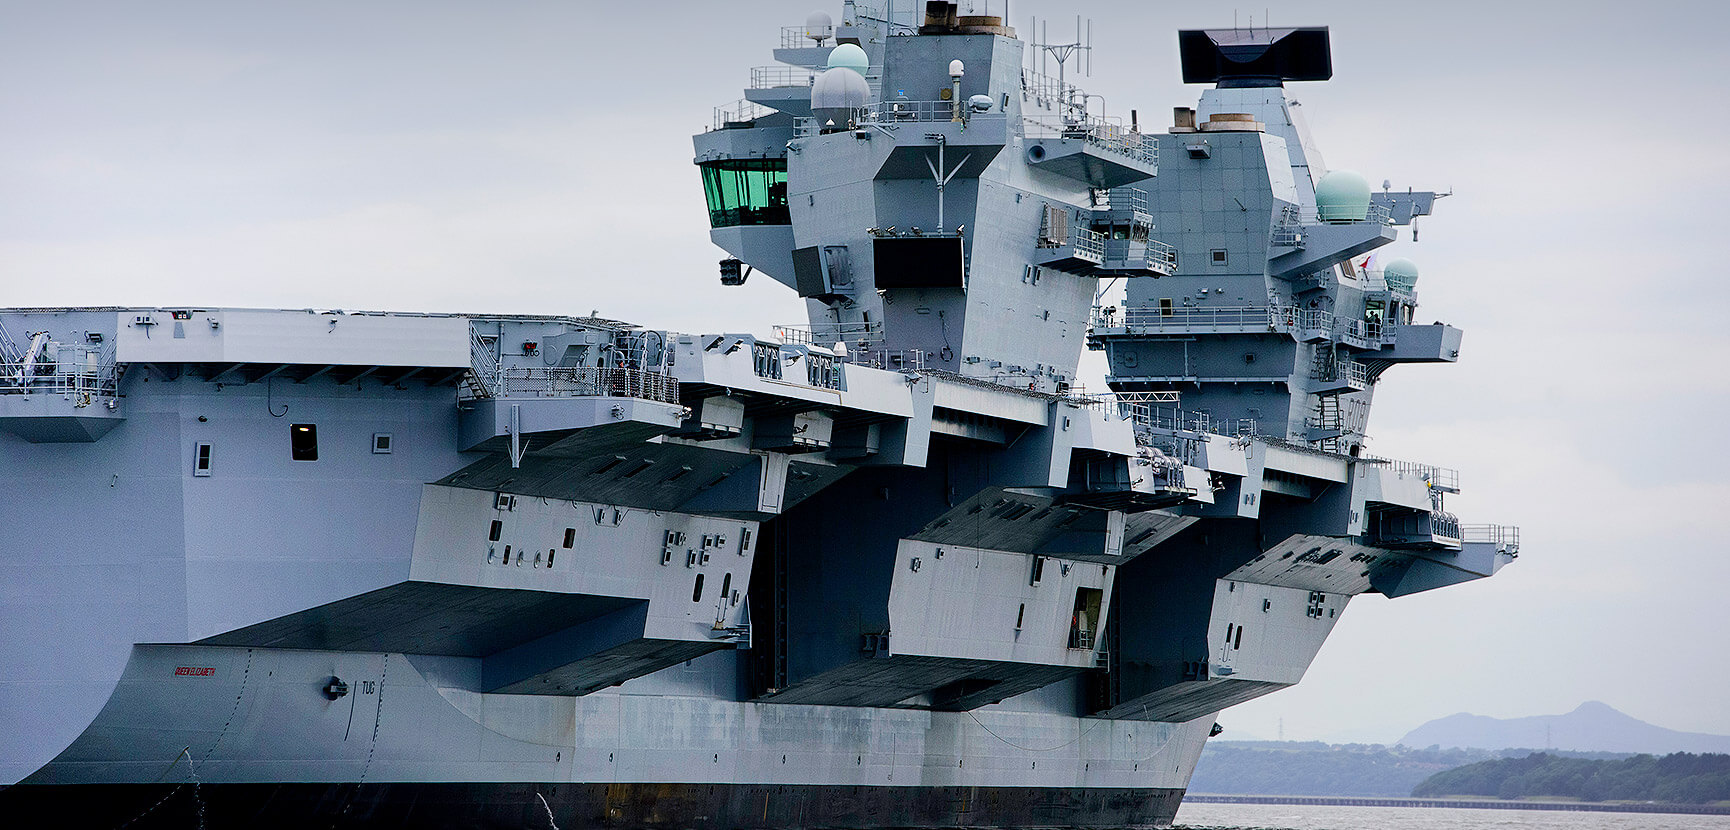 Munitions handling on the Royal Navy's aircraft carriers | Save the